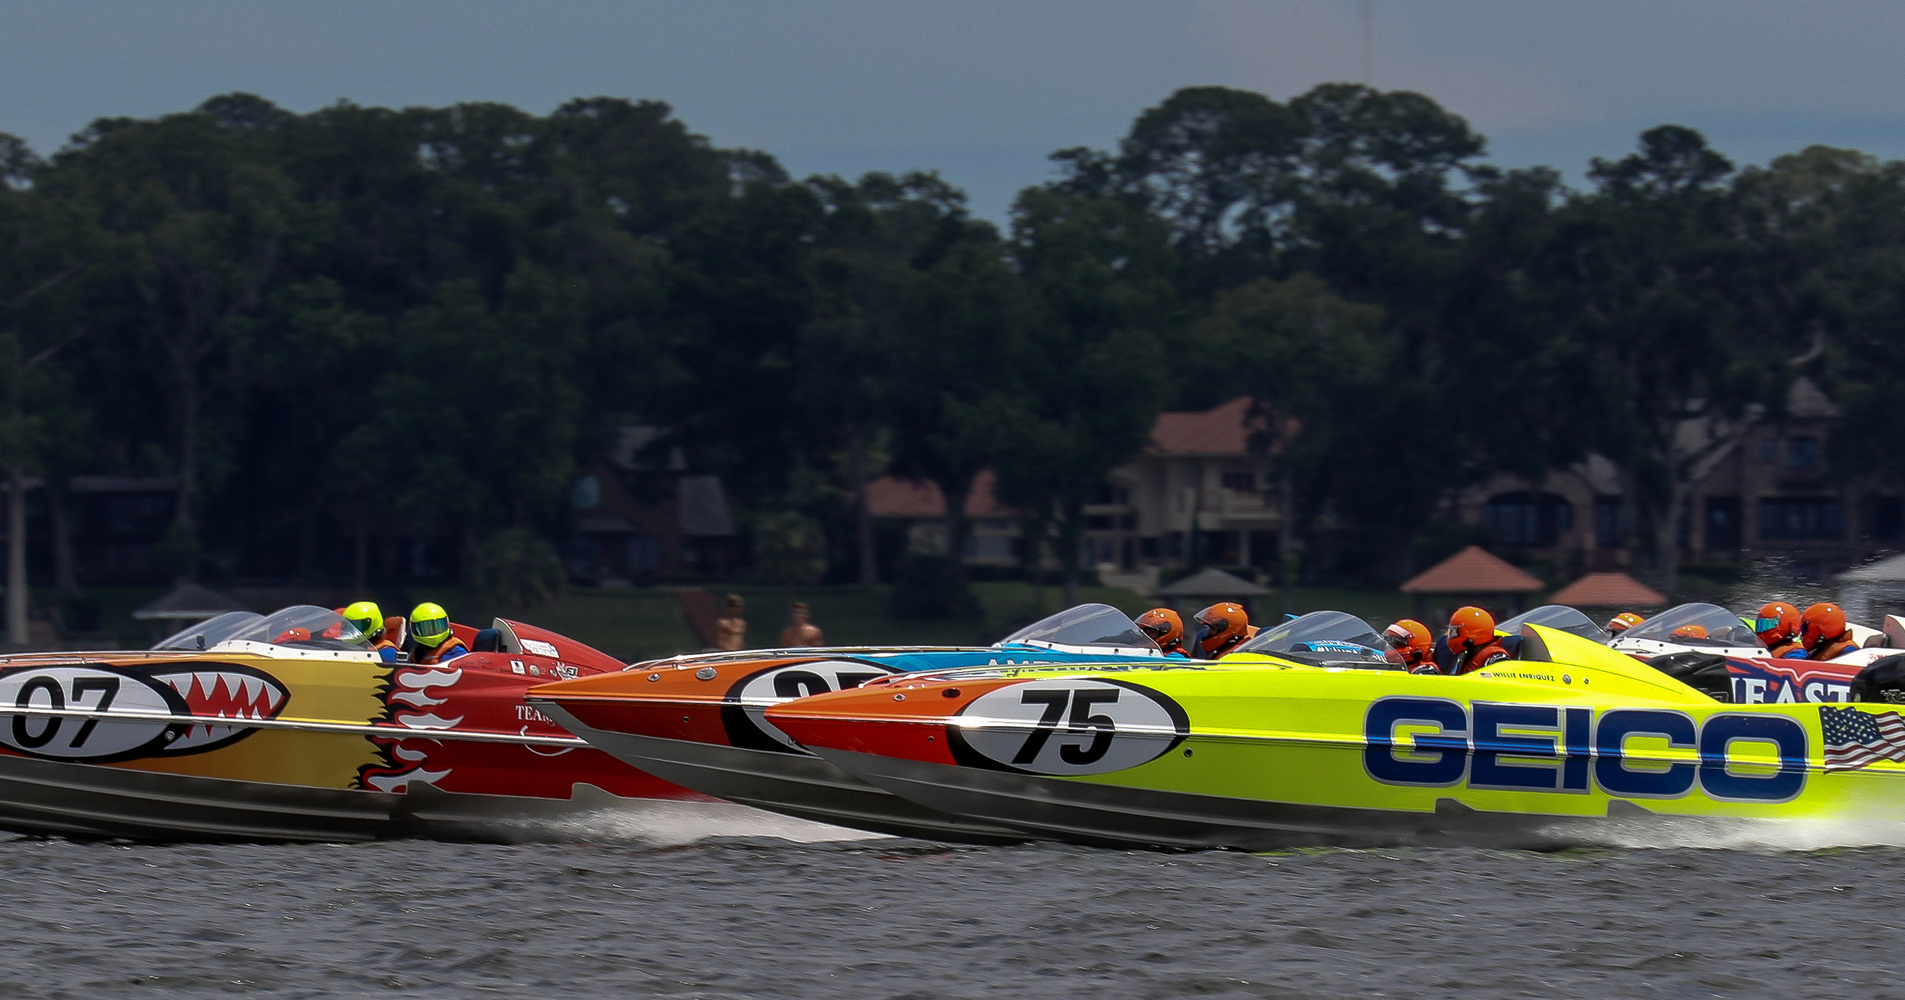 It was another excellent day of racing in Jacksonville